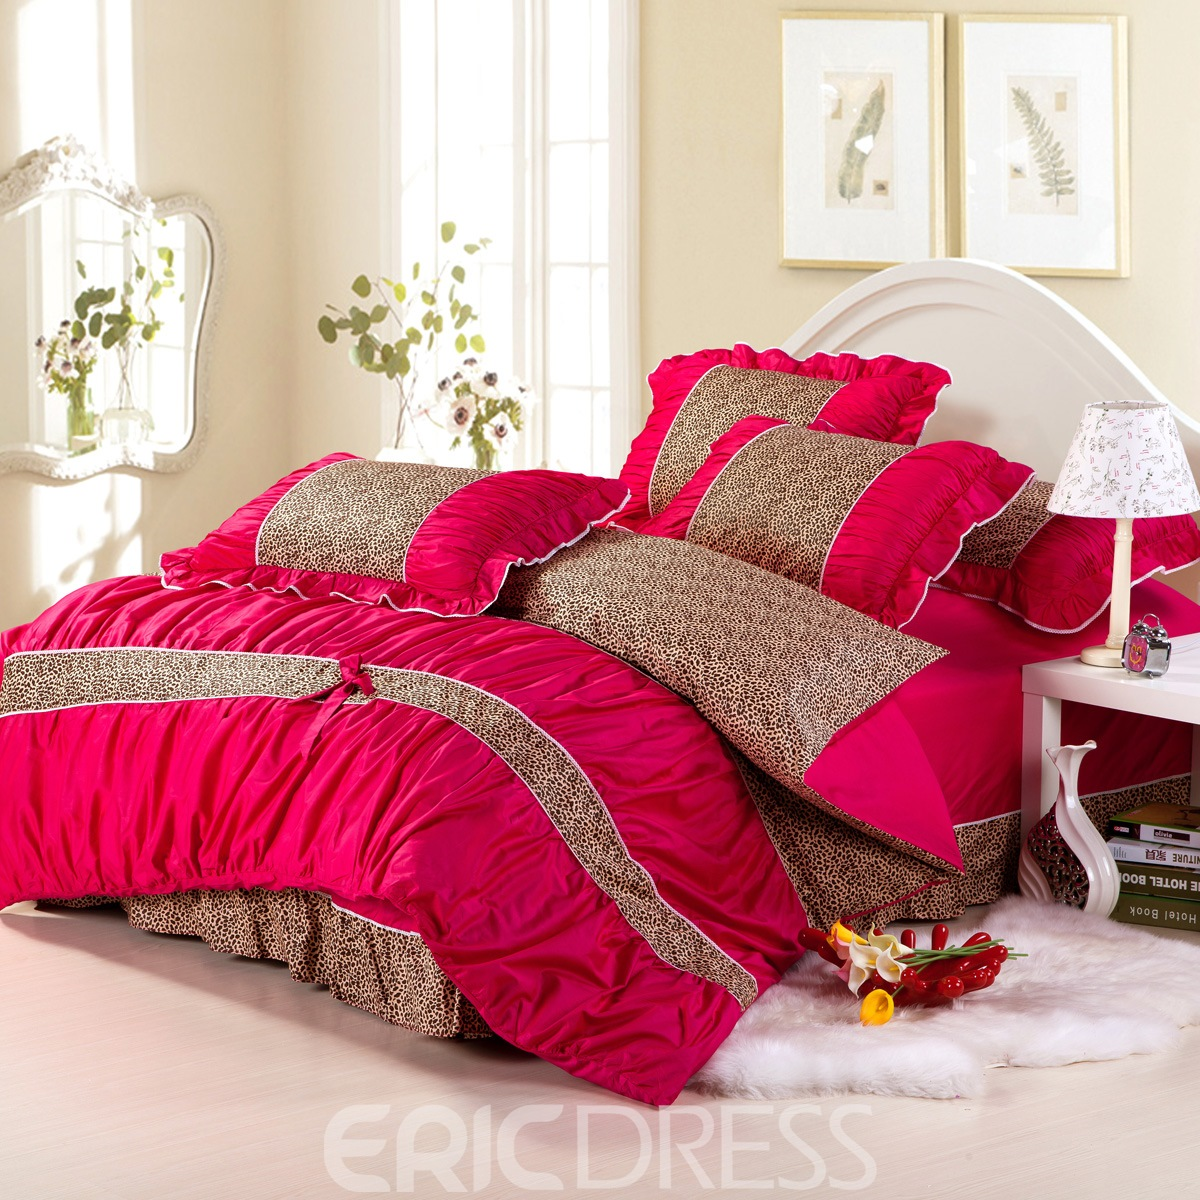 Leopard and red bedding - Leopard And Red Bedding 44